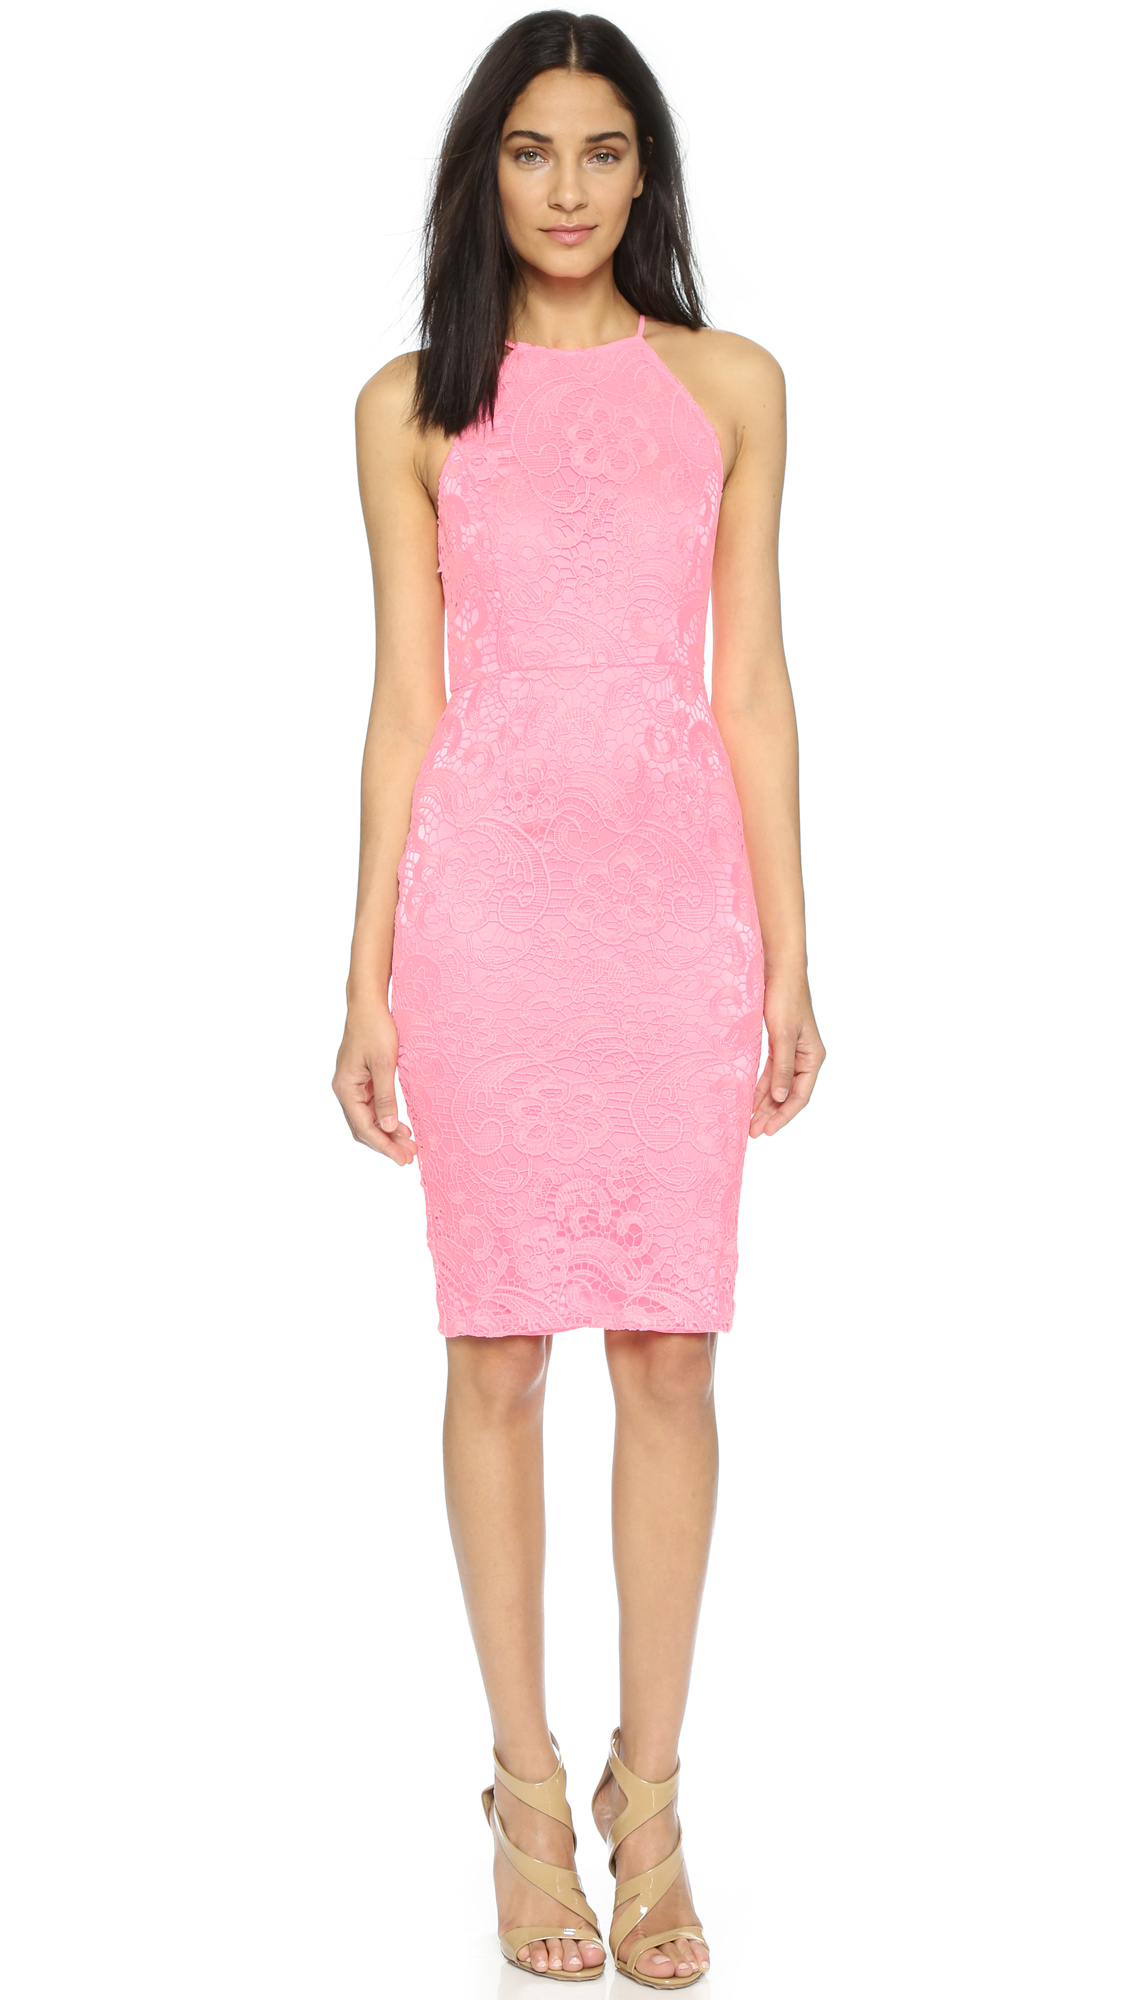 Yumi Kim Save The Date Lace Dress Light Pink In Pink Lyst